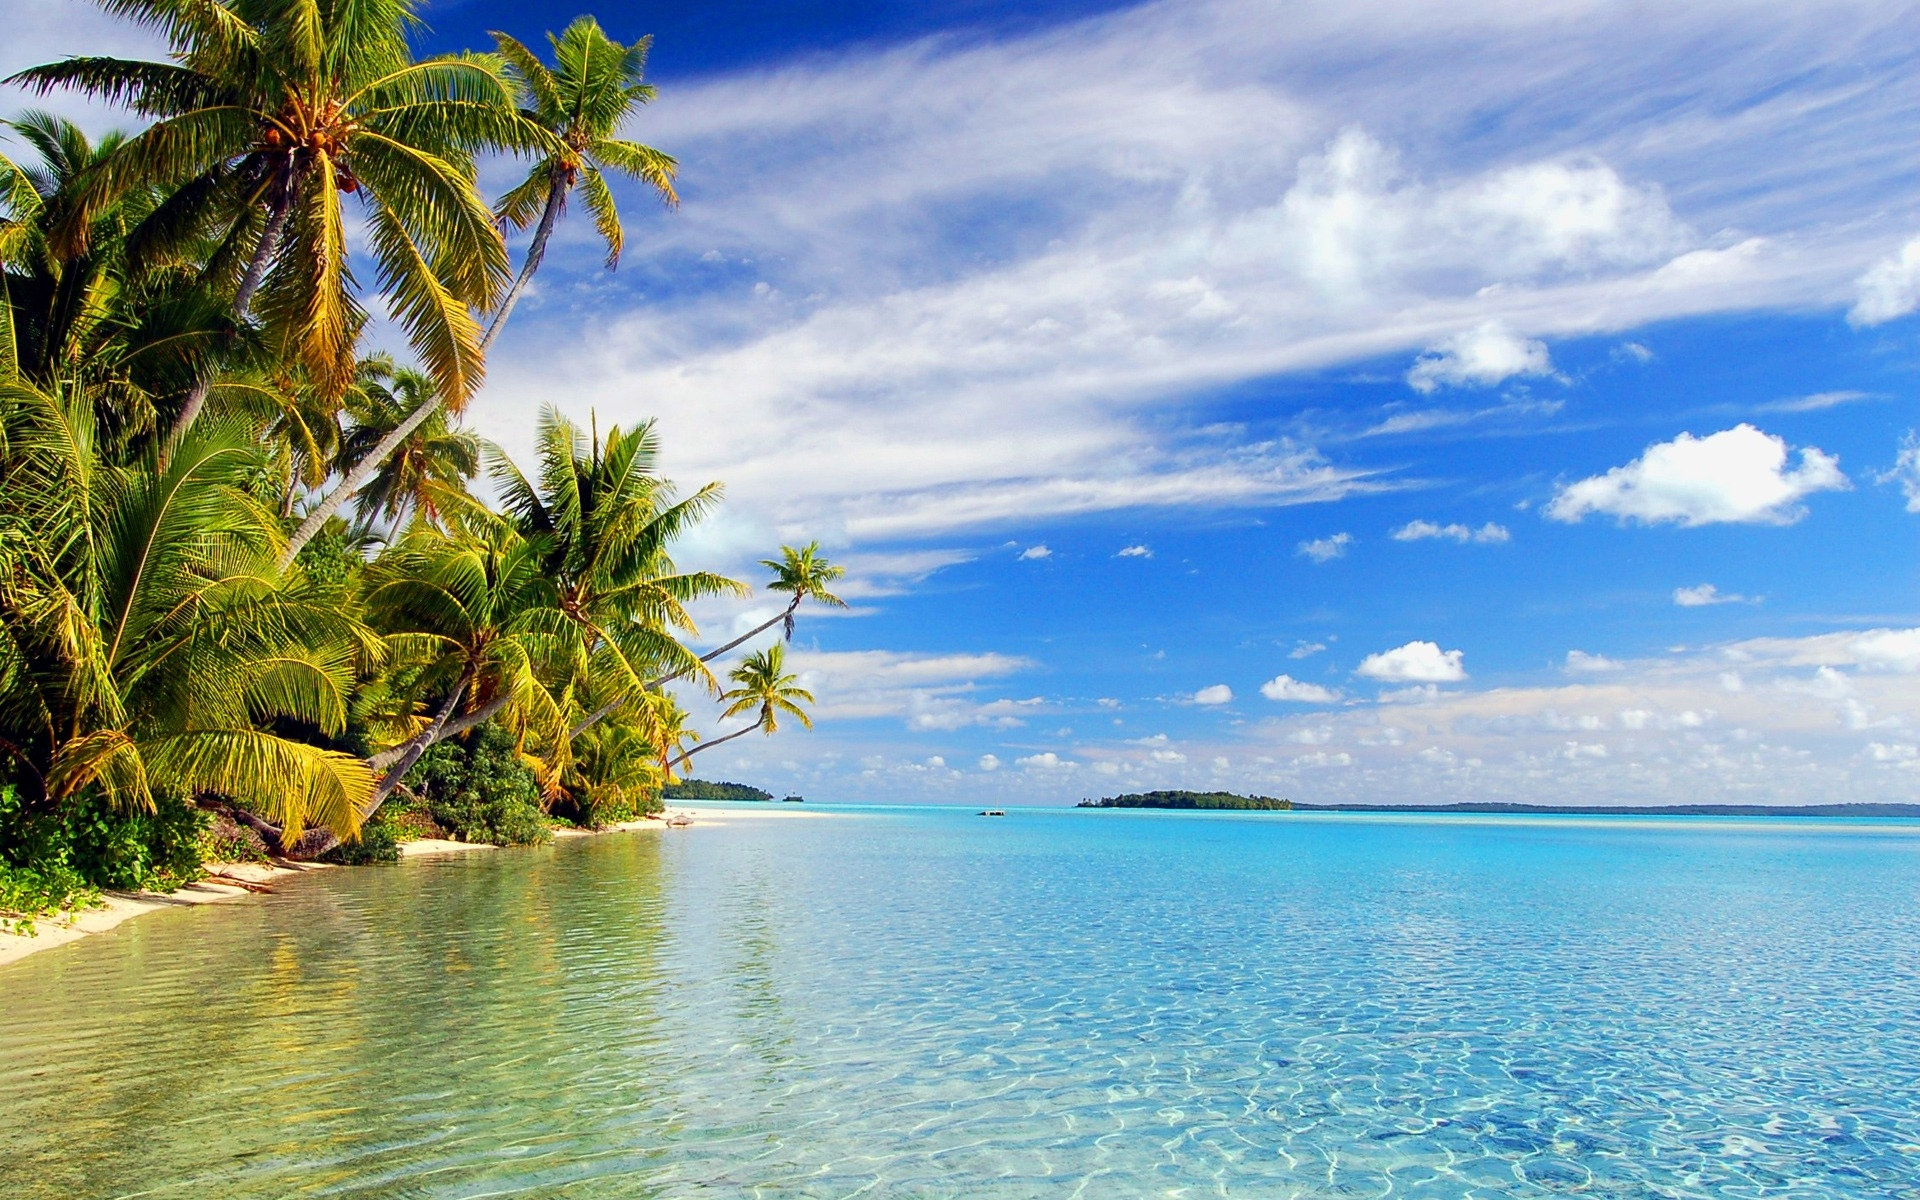 hd tropical island beach paradise wallpapers and backgrounds 1920x1200